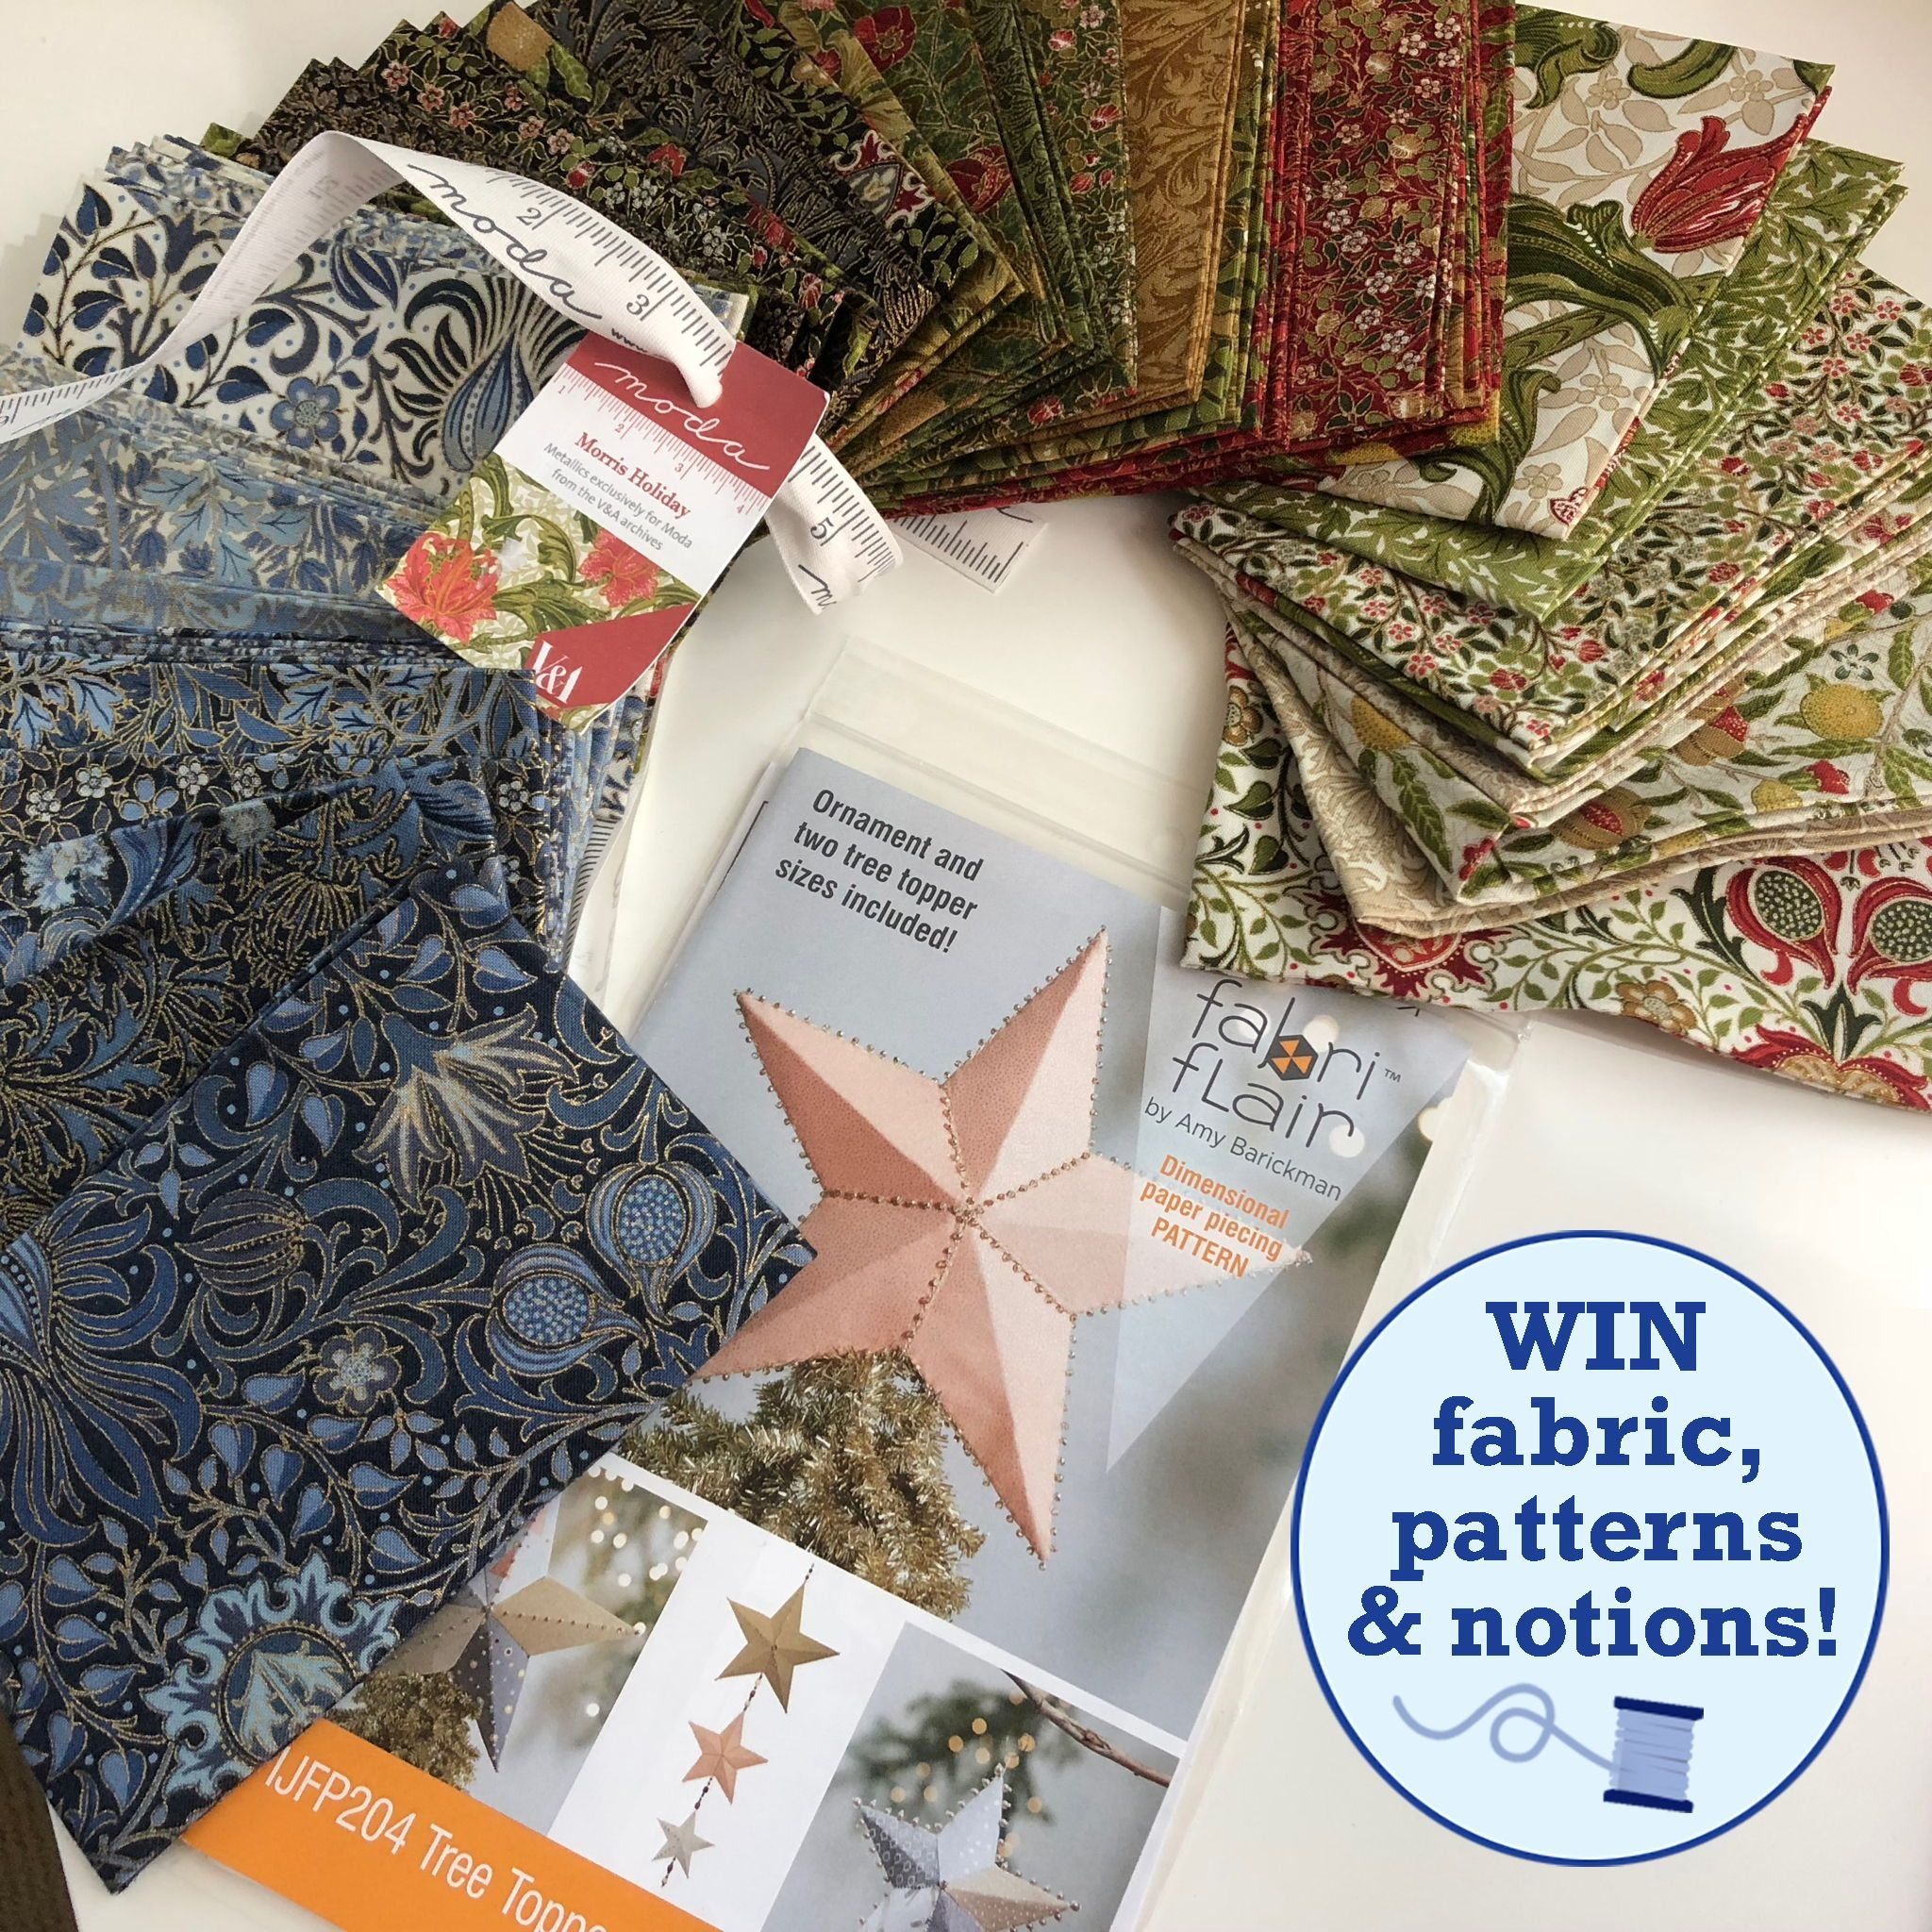 Weekly Giveaways To Celebrate National Sewing Month